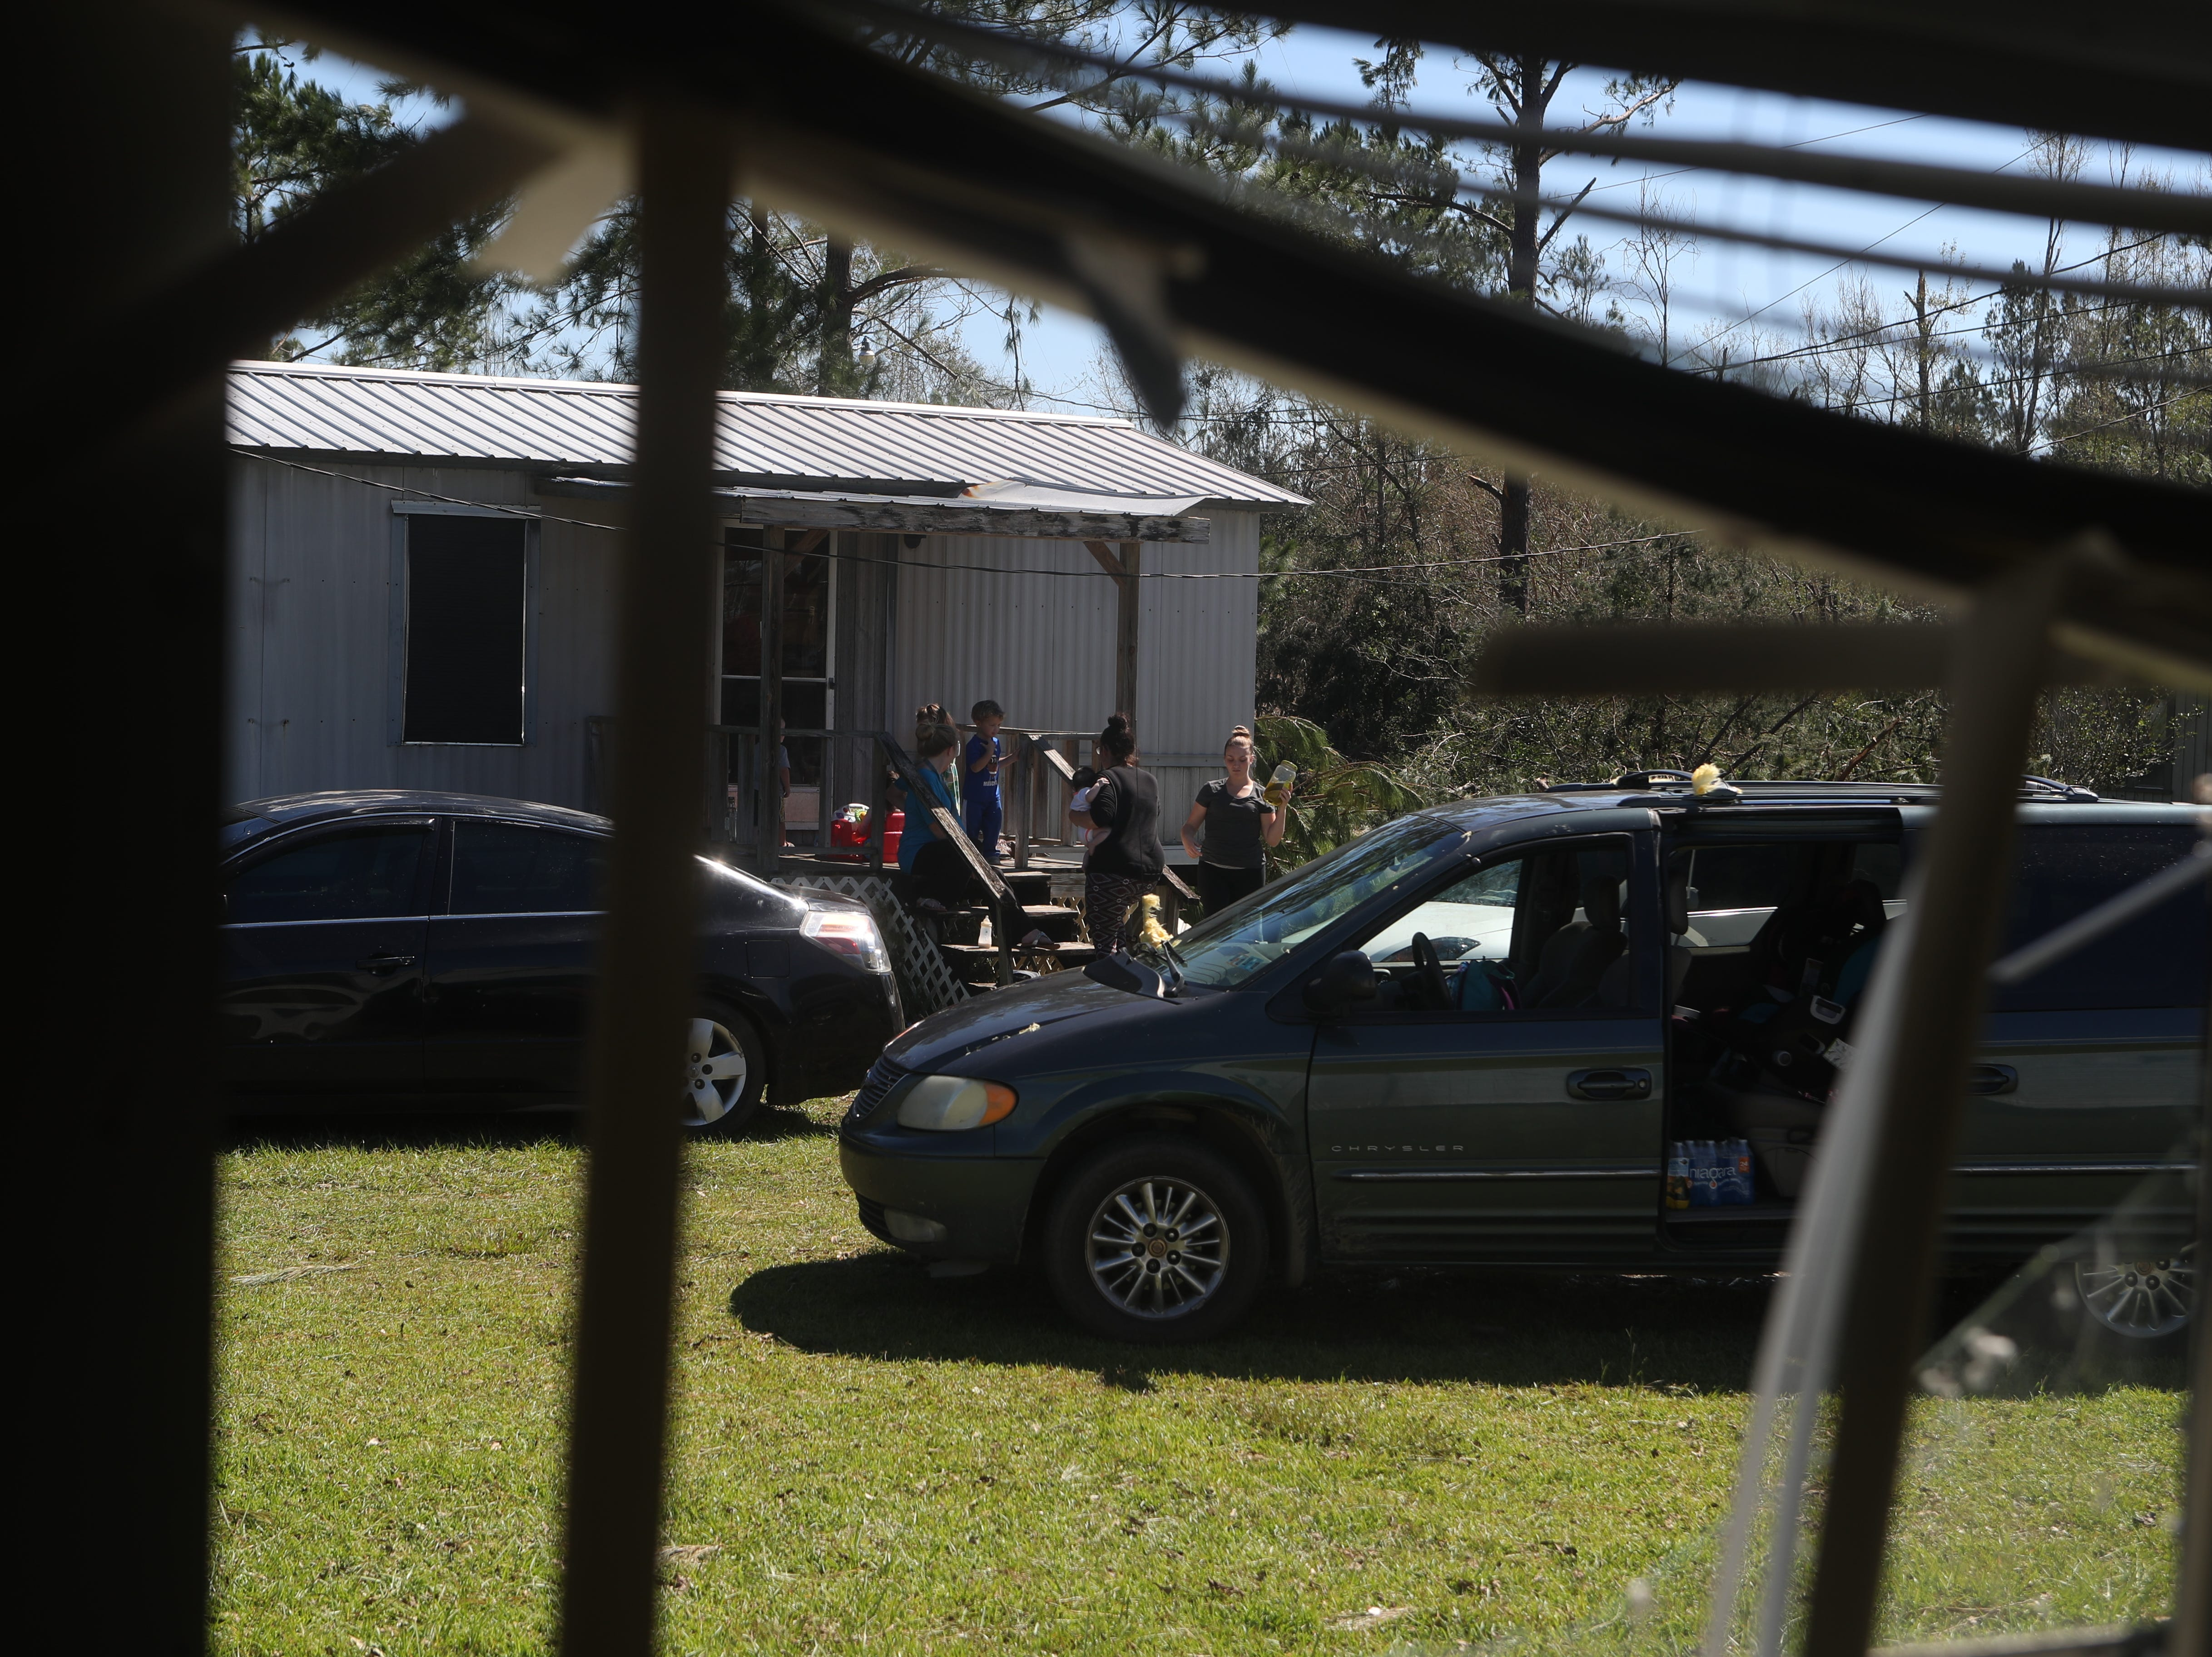 Seen from the broken window of their home, Caleb Hoffman's family sits with neighbors in Blountstown, Fla. in the aftermath of Hurricane Michael Friday, Oct. 12, 2018.